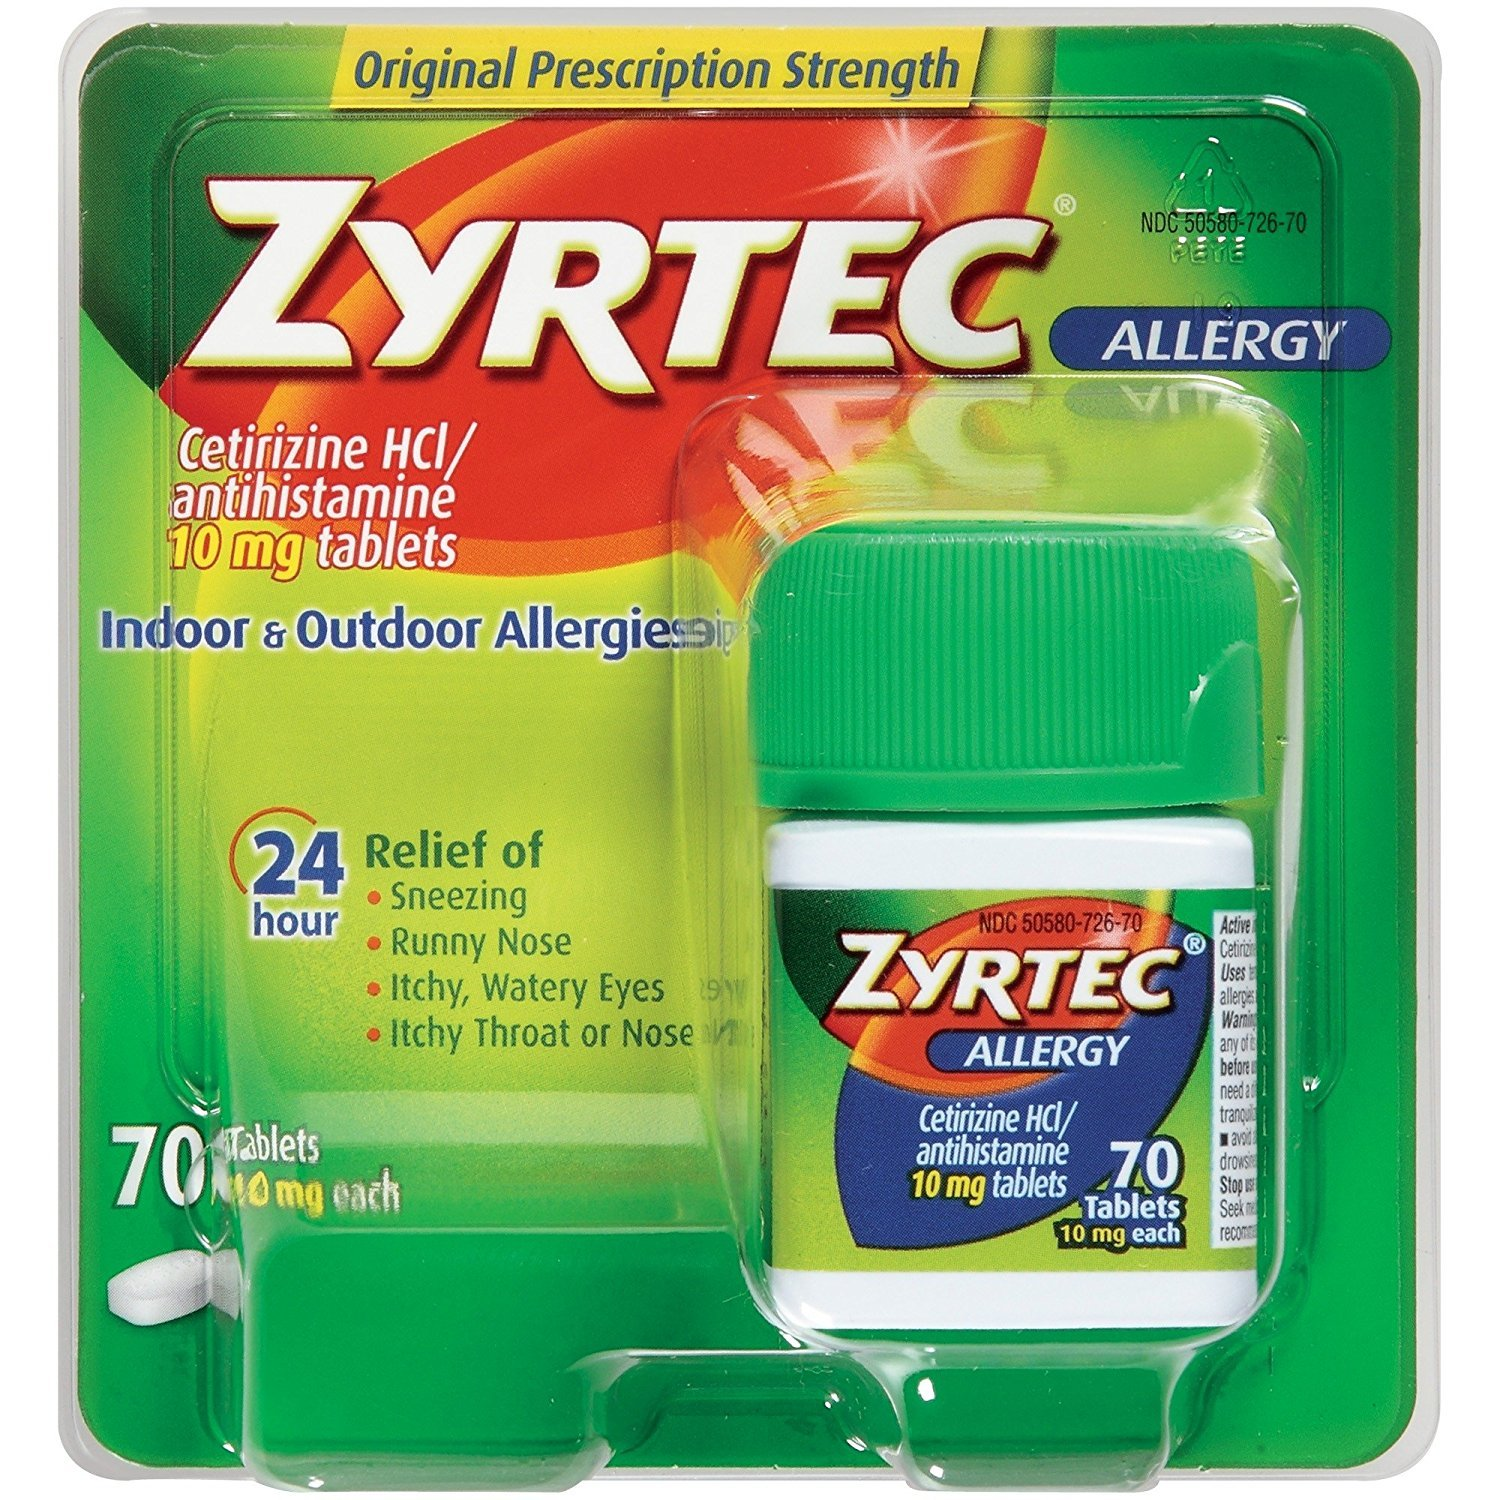 Zyrtec Allergy Relief Tablets, 140 Count by Zyrtec